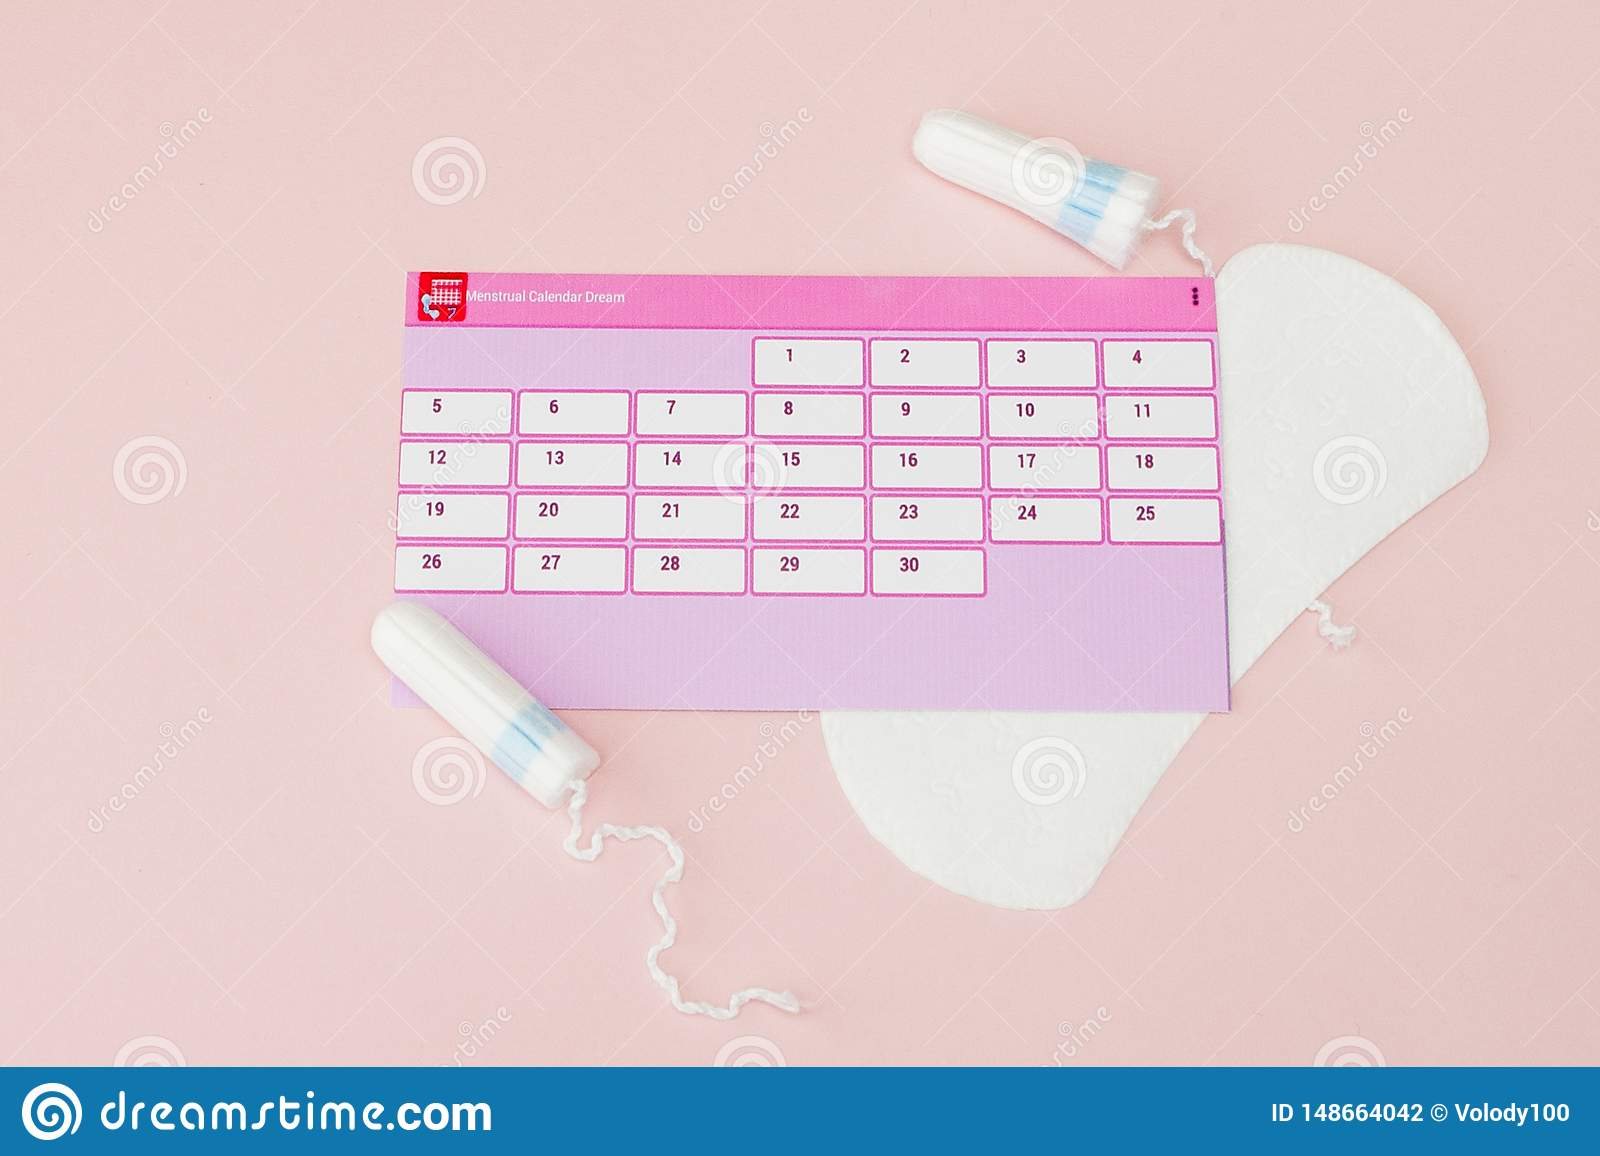 Tampon, feminine, sanitary pads for critical days, feminine calendar, pain pills during menstruation on a pink background.